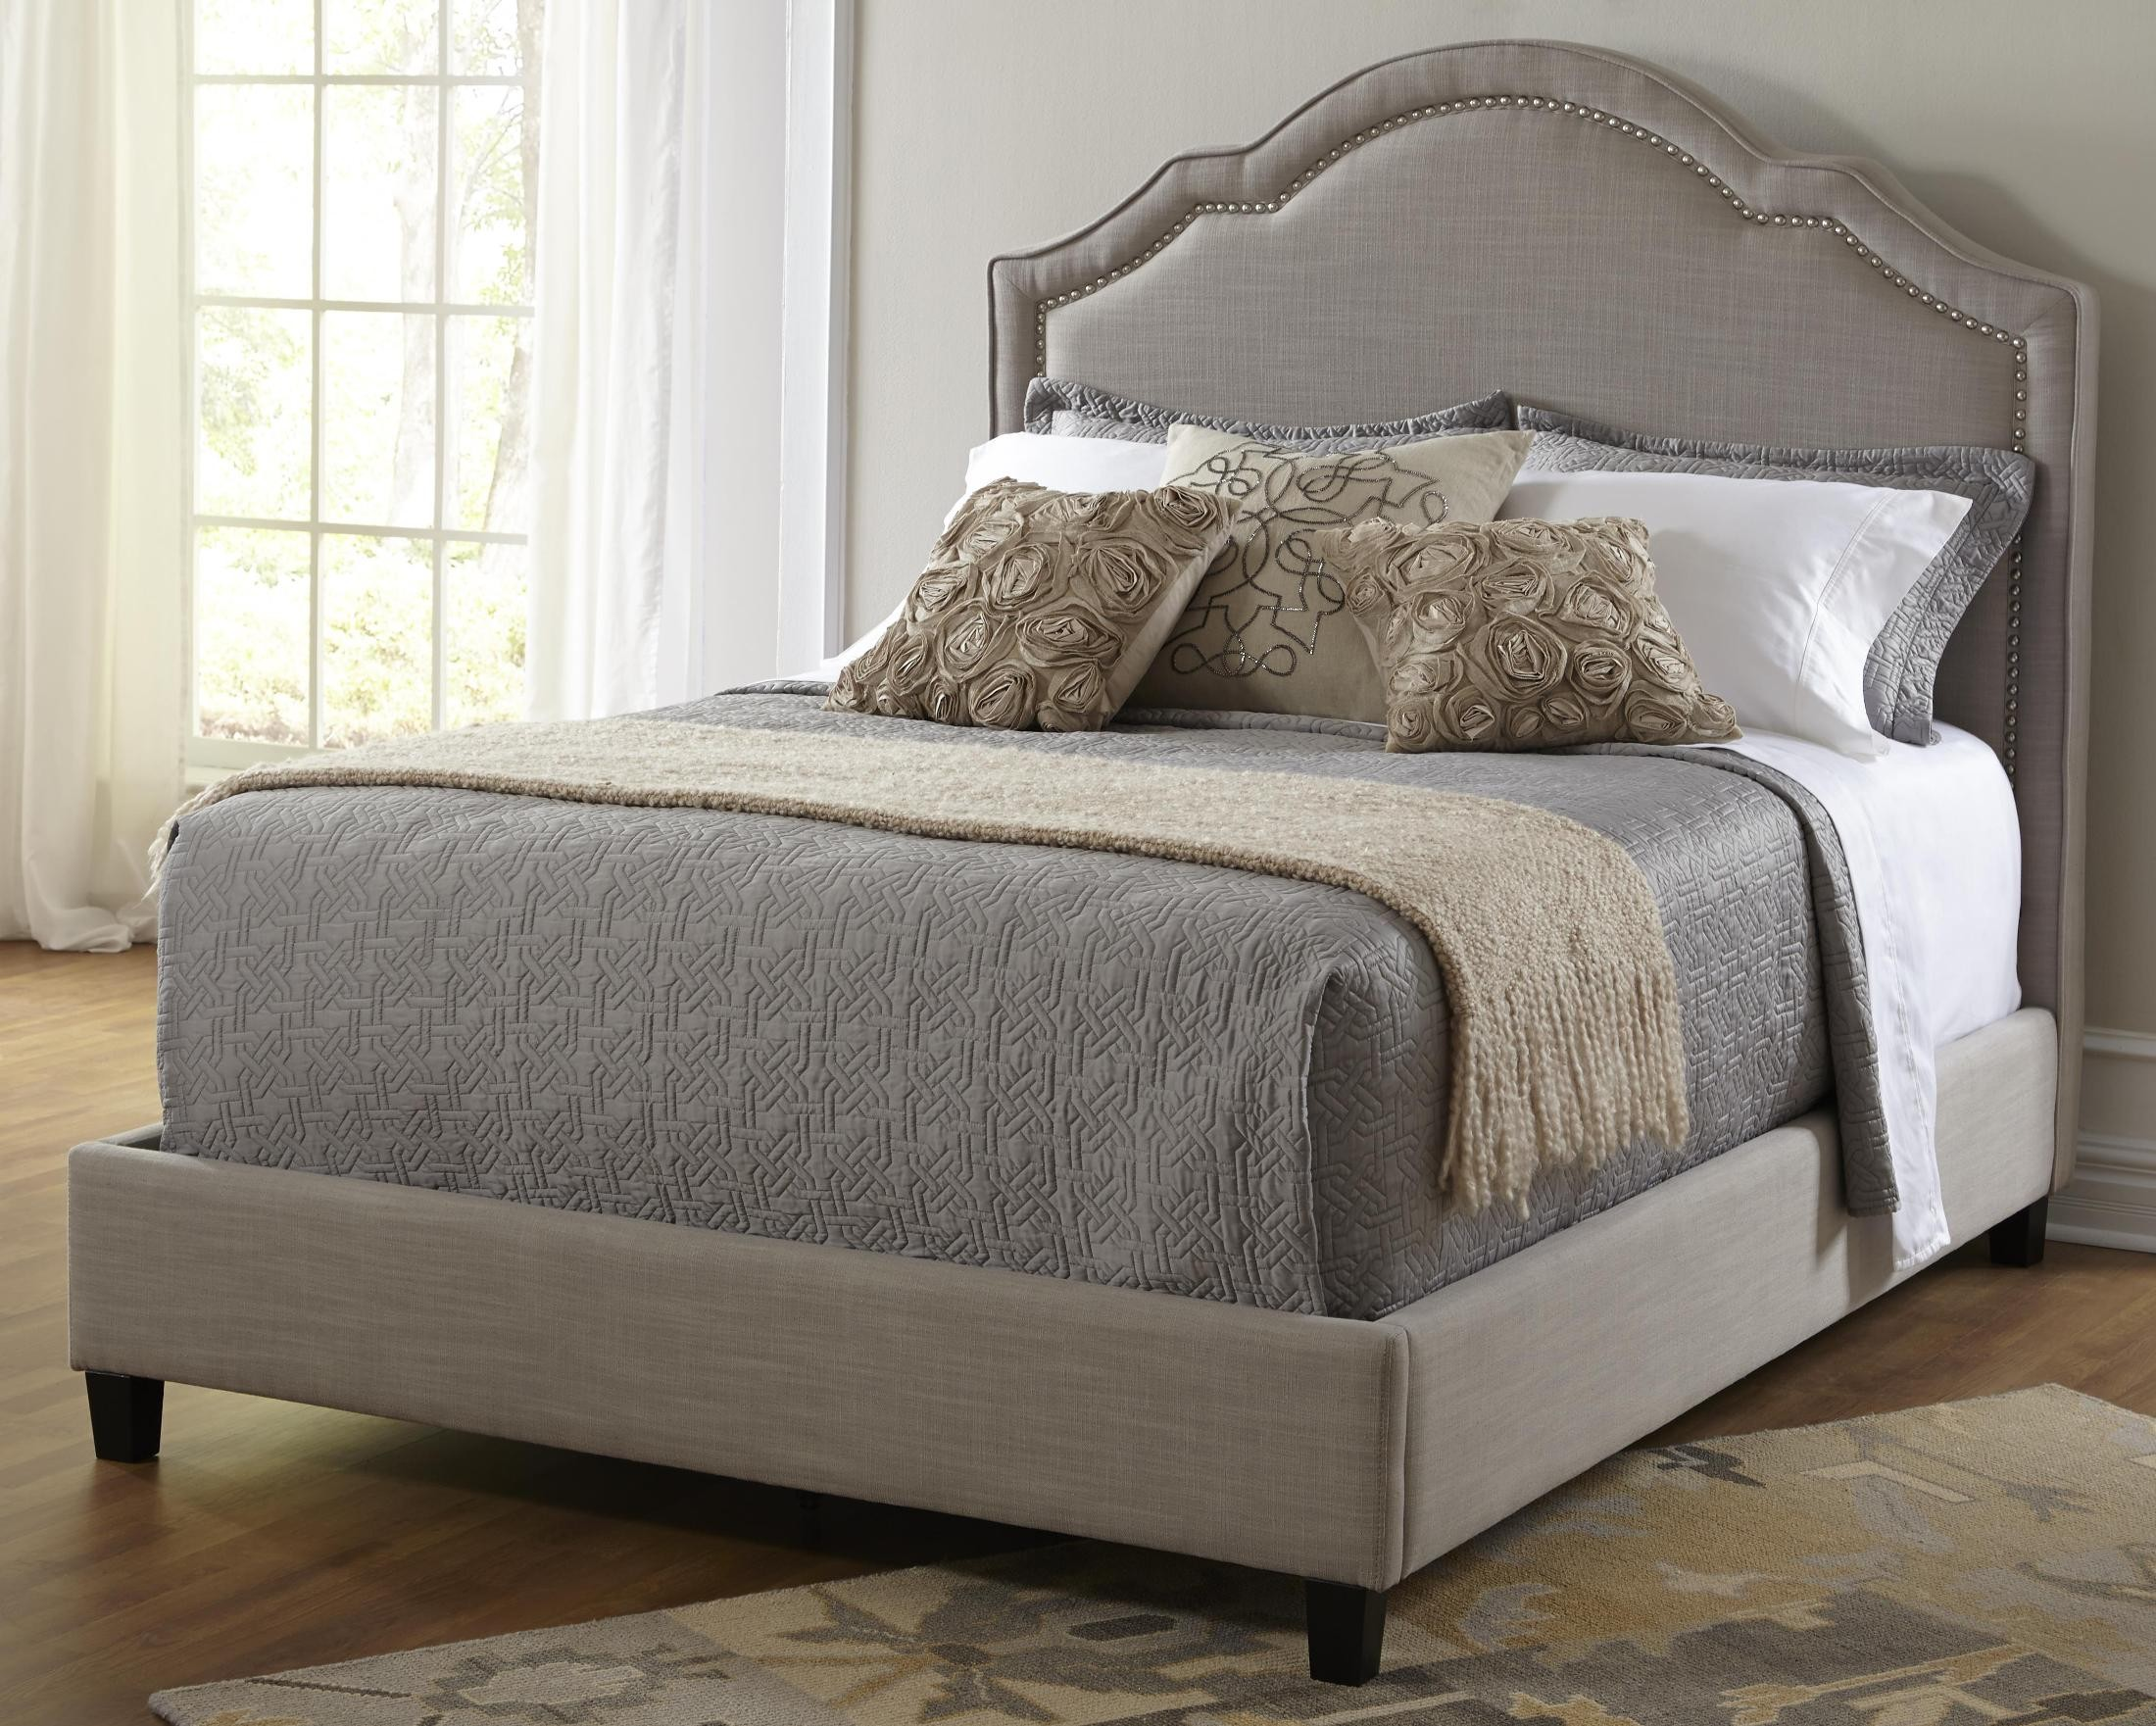 Wayfair Upholstered Bed Home Wayfair Upholstered Bed King: Queen Upholstered Shaped Nailhead Bed From Pulaski